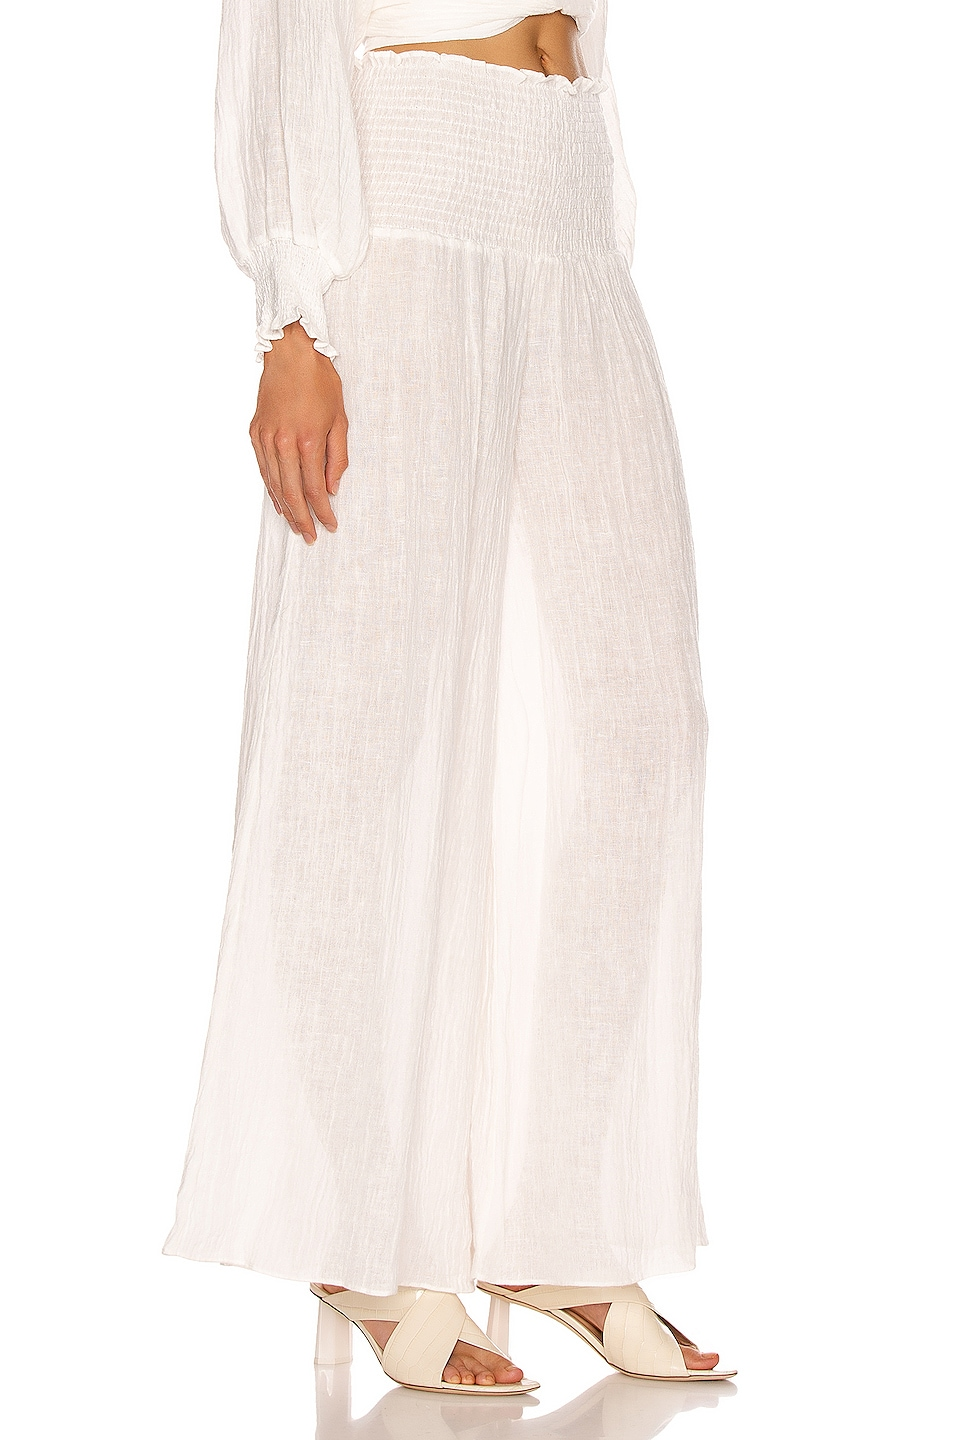 Image 2 of Alexis Taddeo Pant in Off White